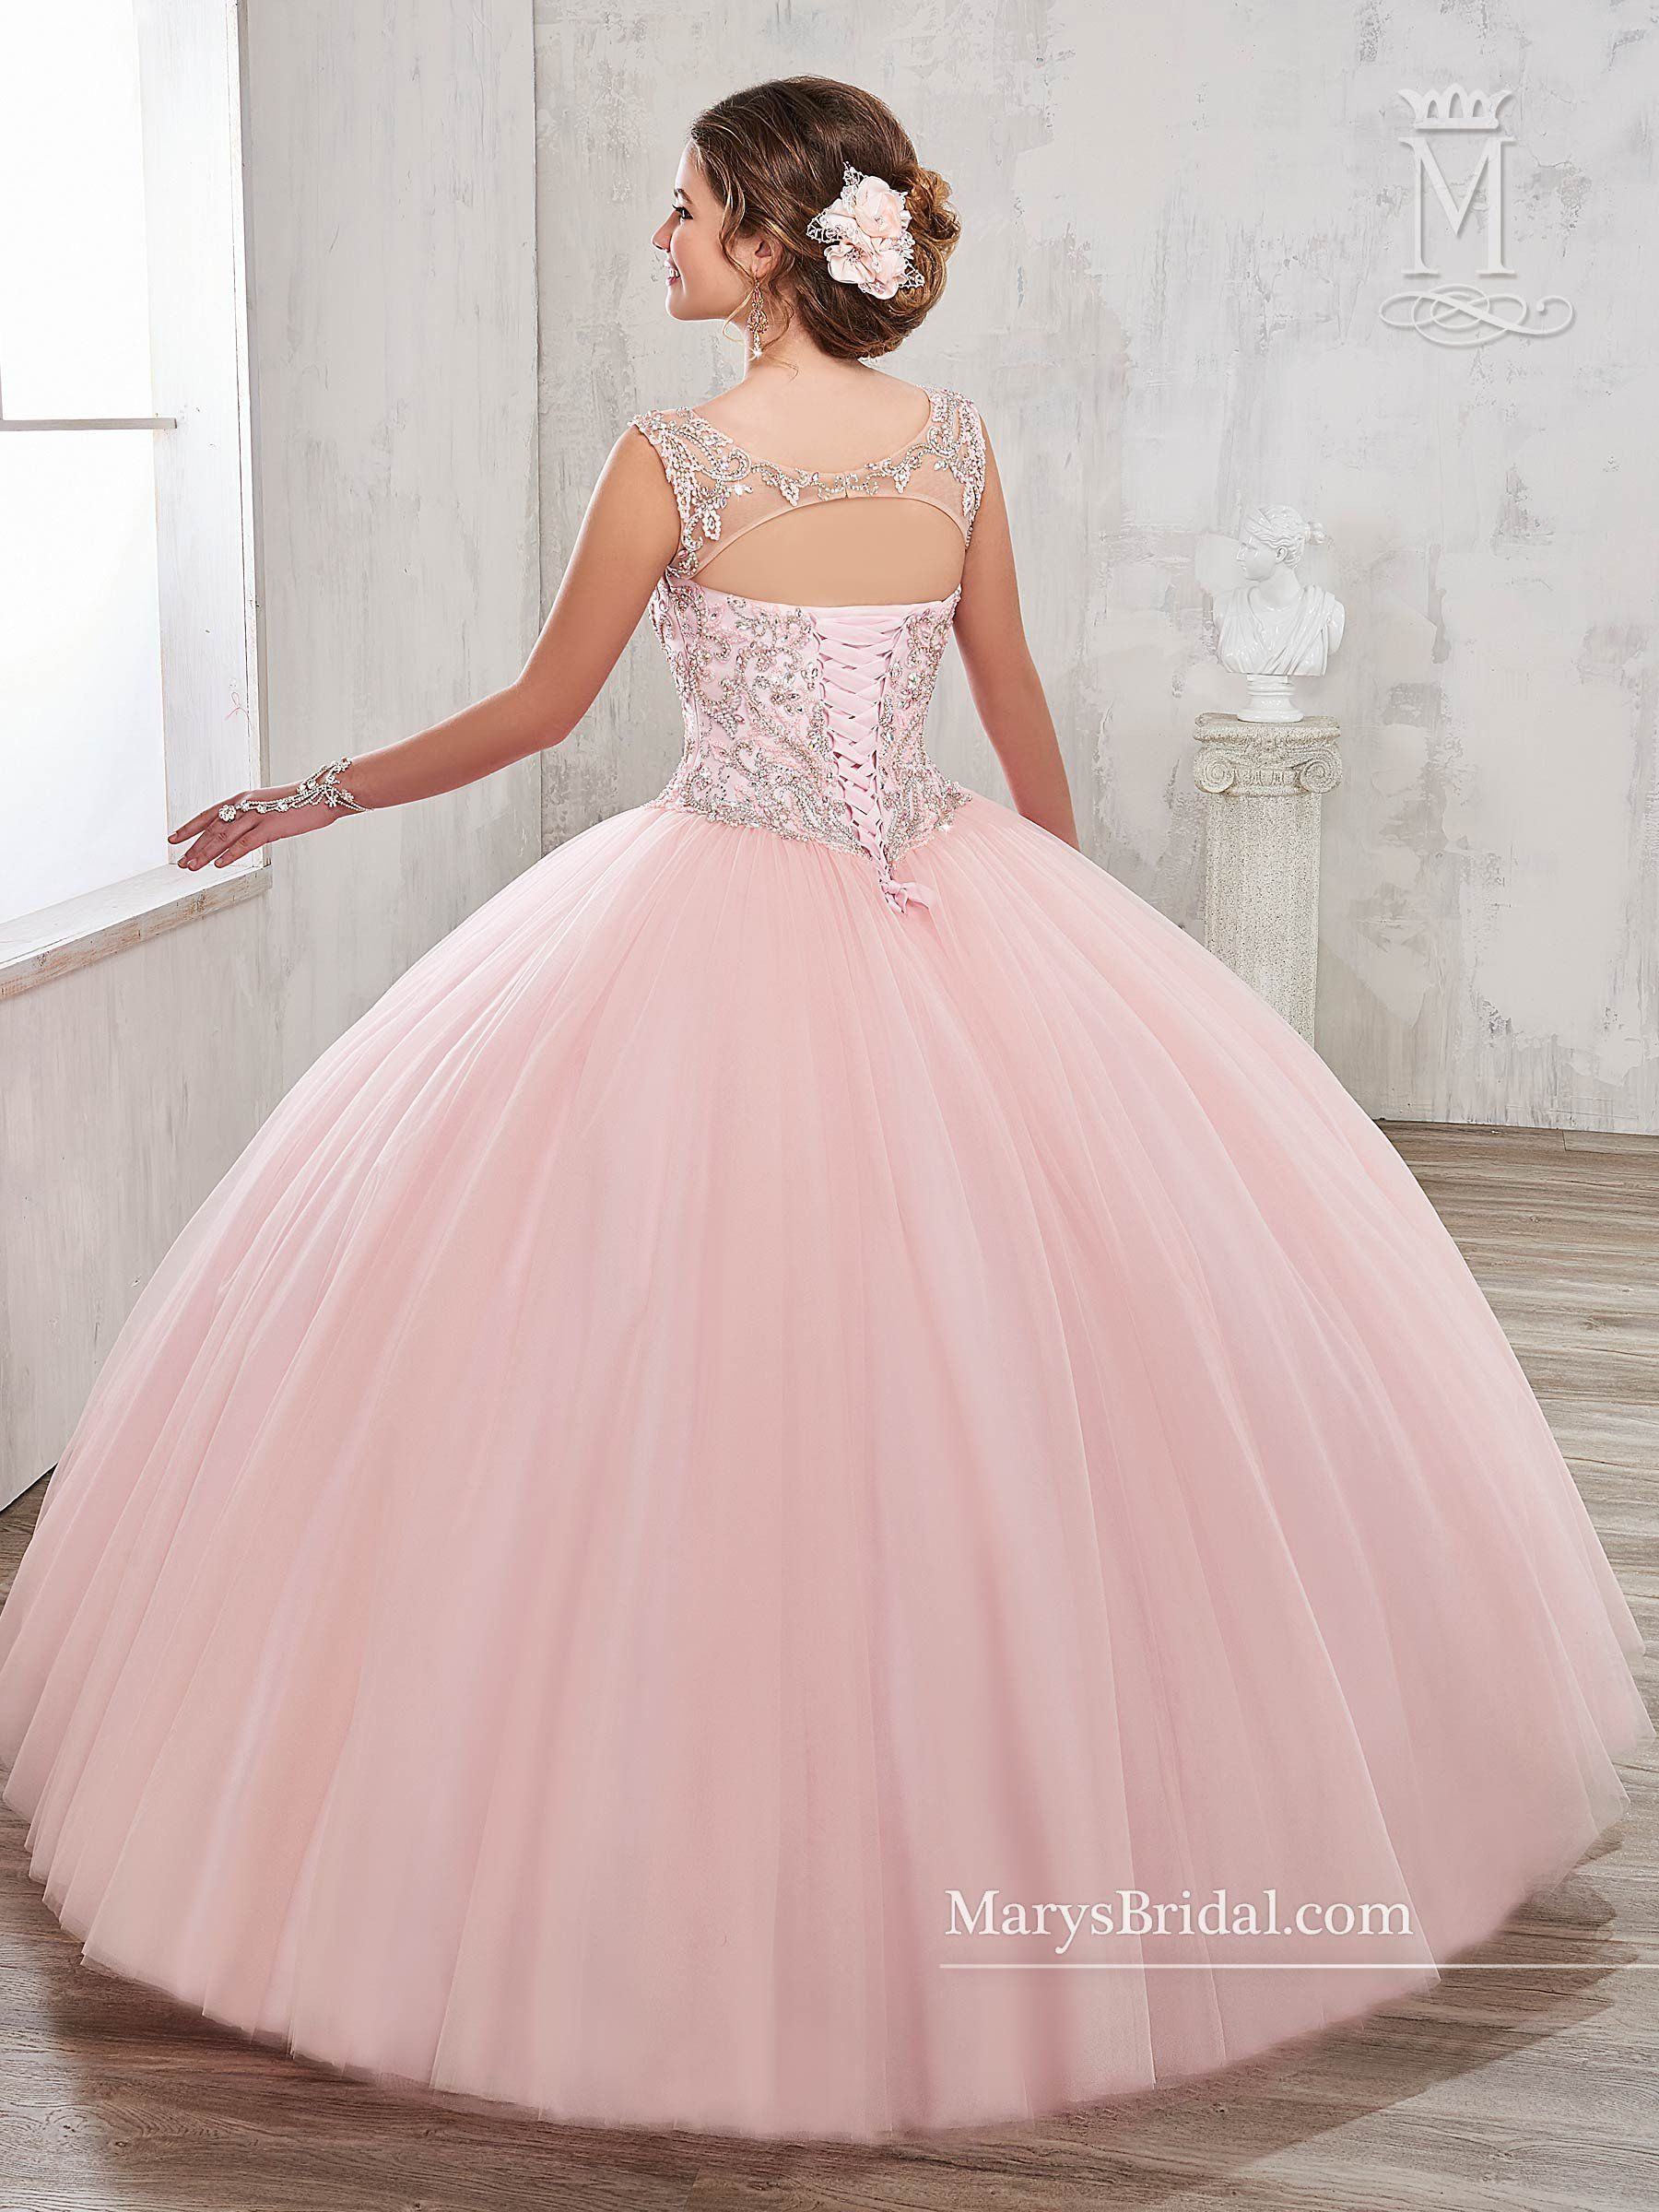 Illusion A Line Quinceanera Dress By Marys Bridal Beloving